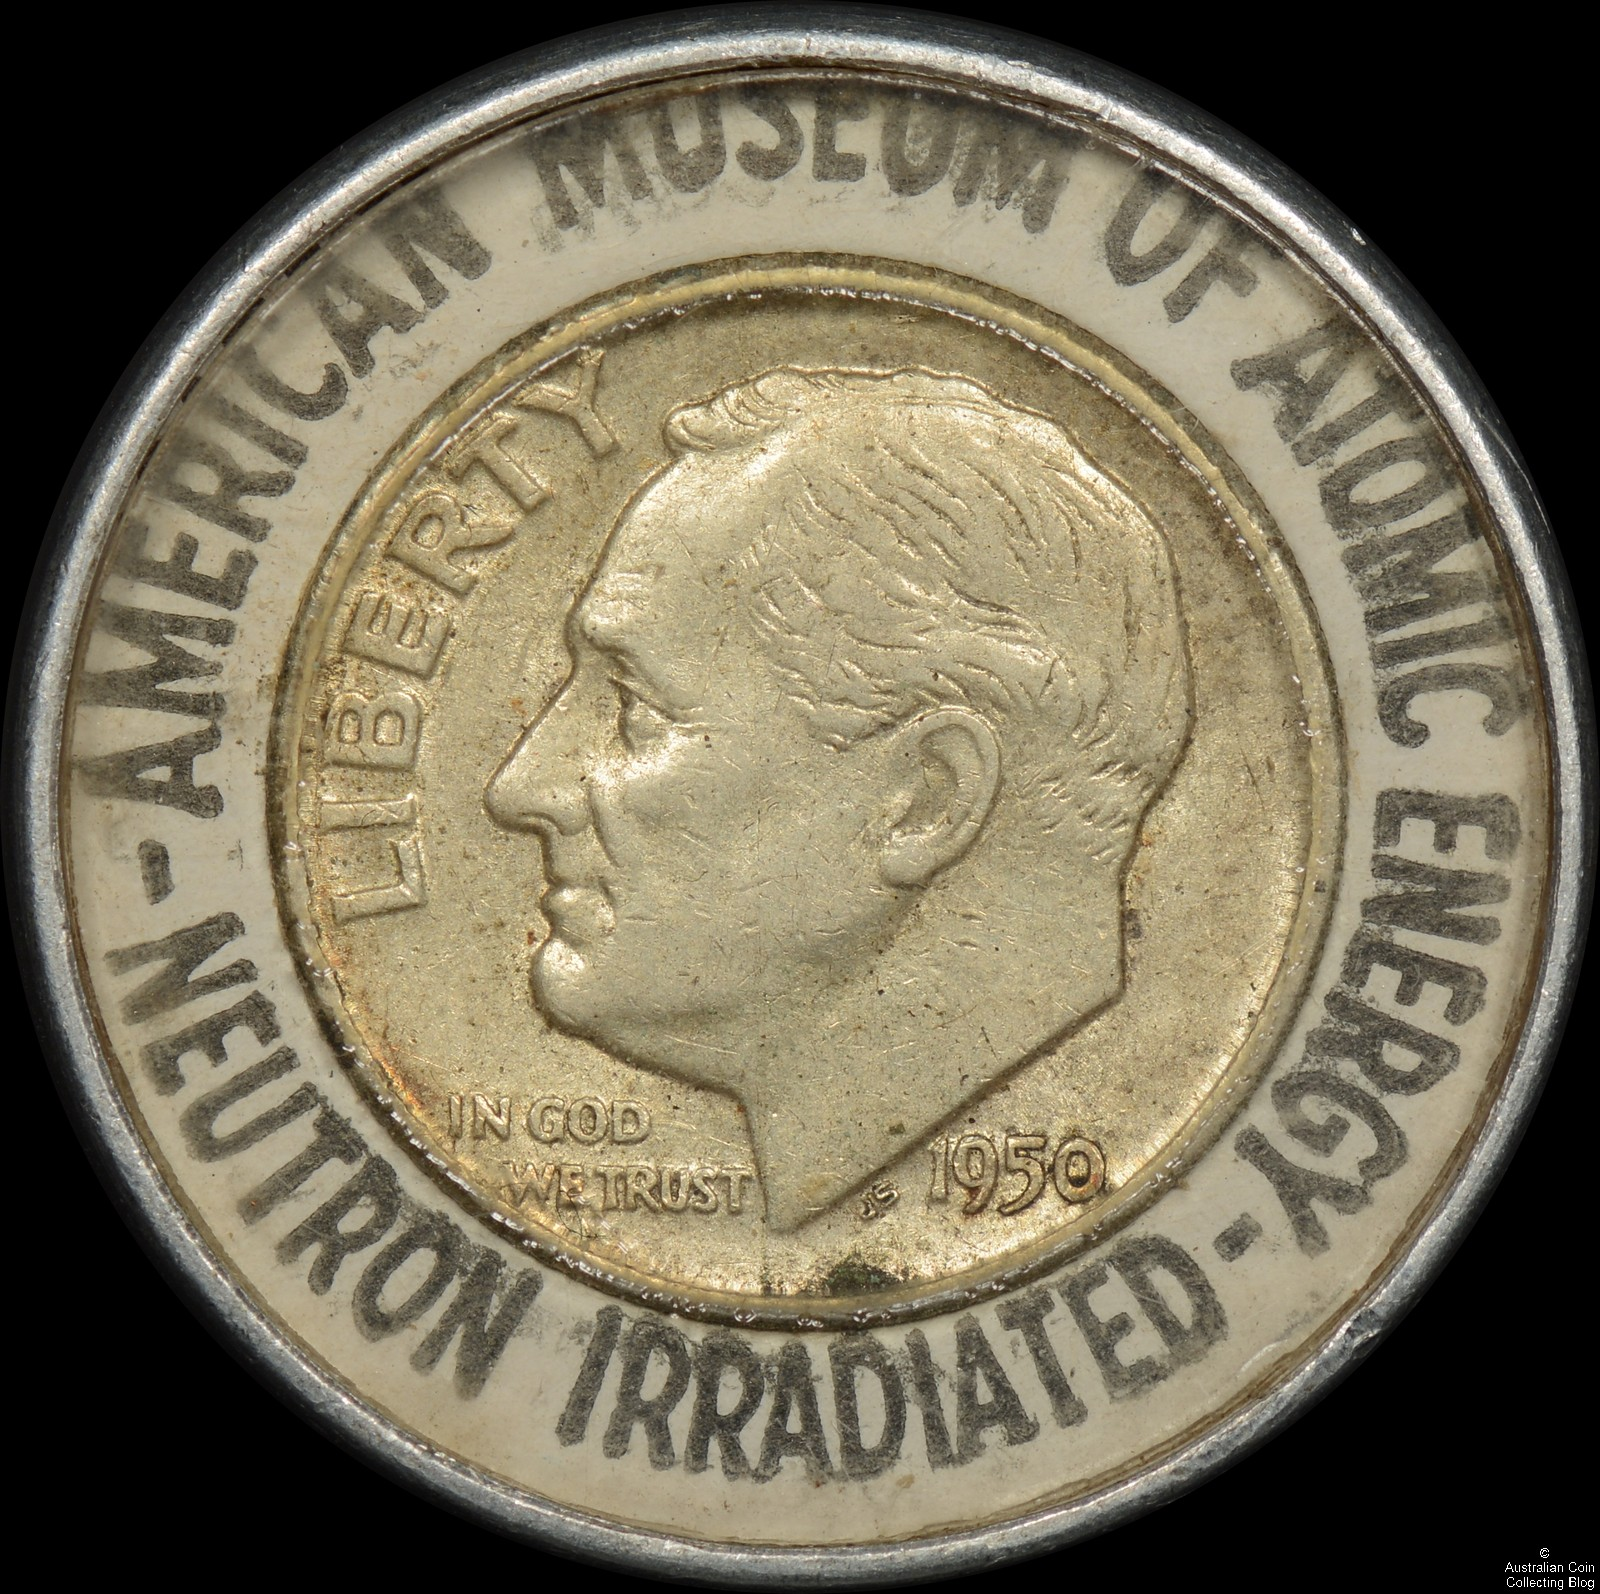 USA 1950 Encased Dime – Neutron Irradiated